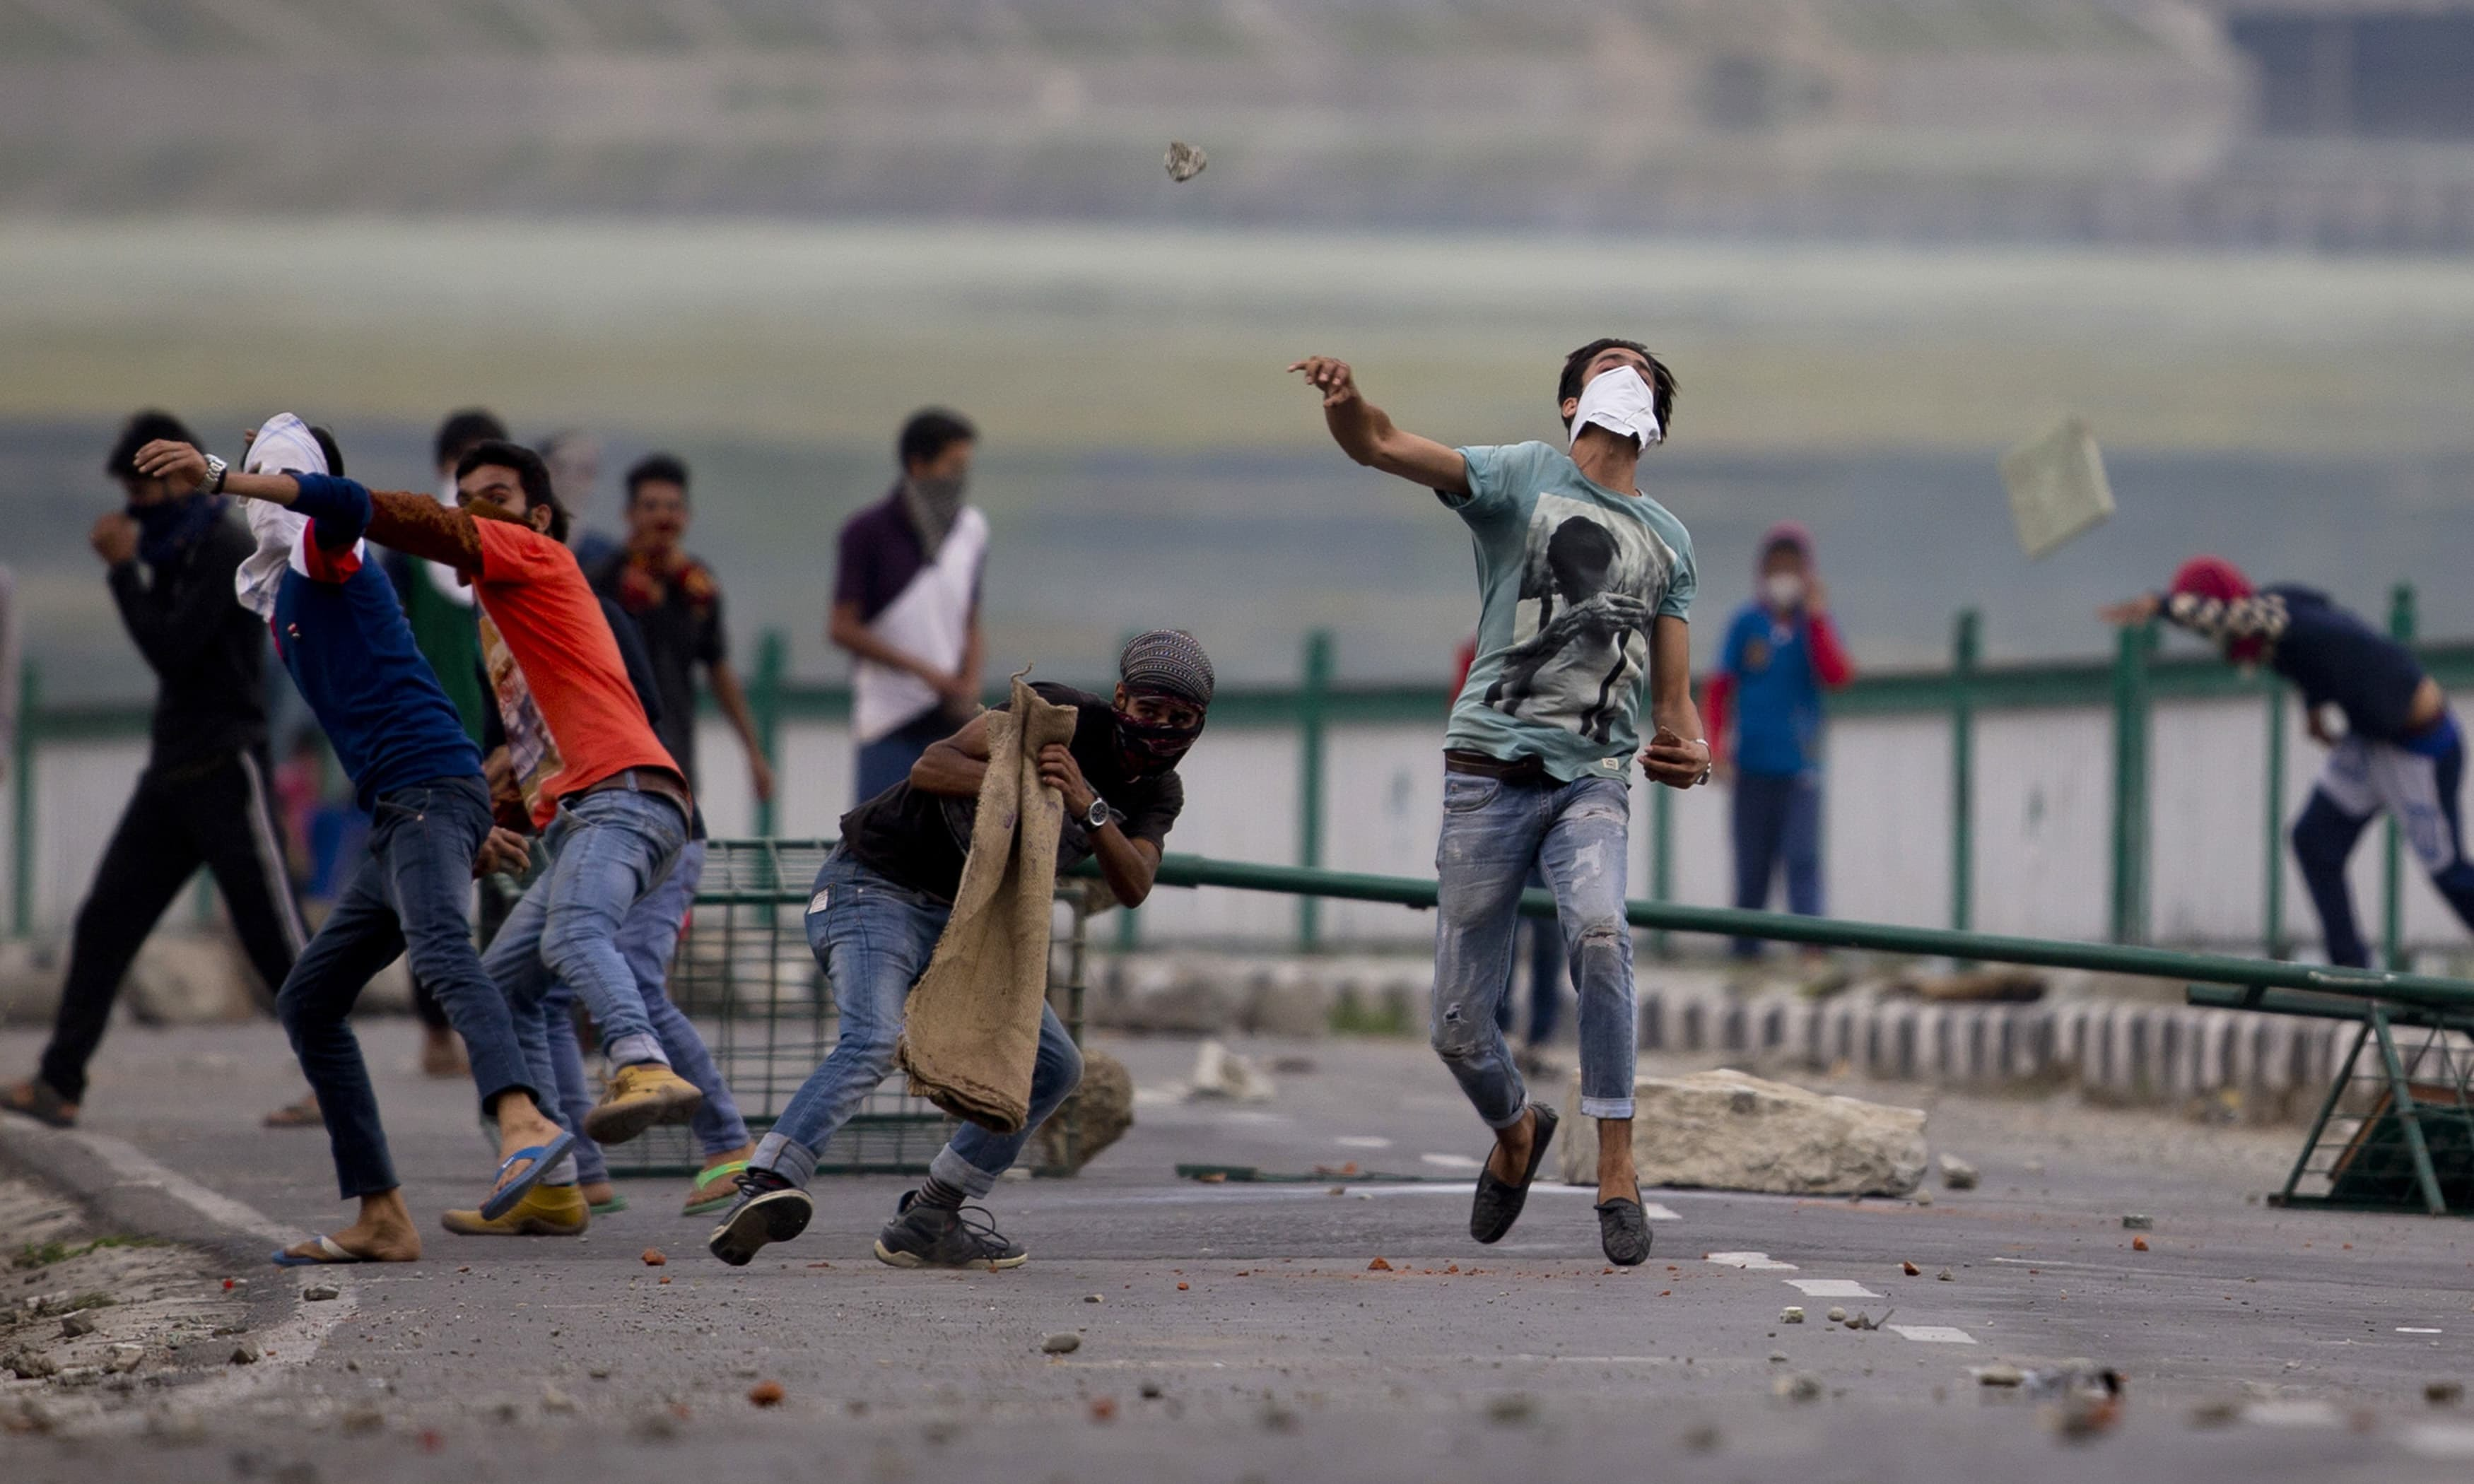 Kashmiri Muslim protesters throw stones at Indian troops in Srinagar, Indian controlled Kashmir, Tuesday, July 12, 2016. Clashes between Indian troops and protesters continued for fourth consecutive day despite a curfew imposed in the disputed Himalayan region to suppress anti-India violence following the Friday killing of Burhan Wani, chief of operations of Hizbul Mujahideen, Kashmir's largest rebel group. (AP Photo/Dar Yasin) — Copyright 2016 The Associated Press. All rights reserved. This material may not be pub